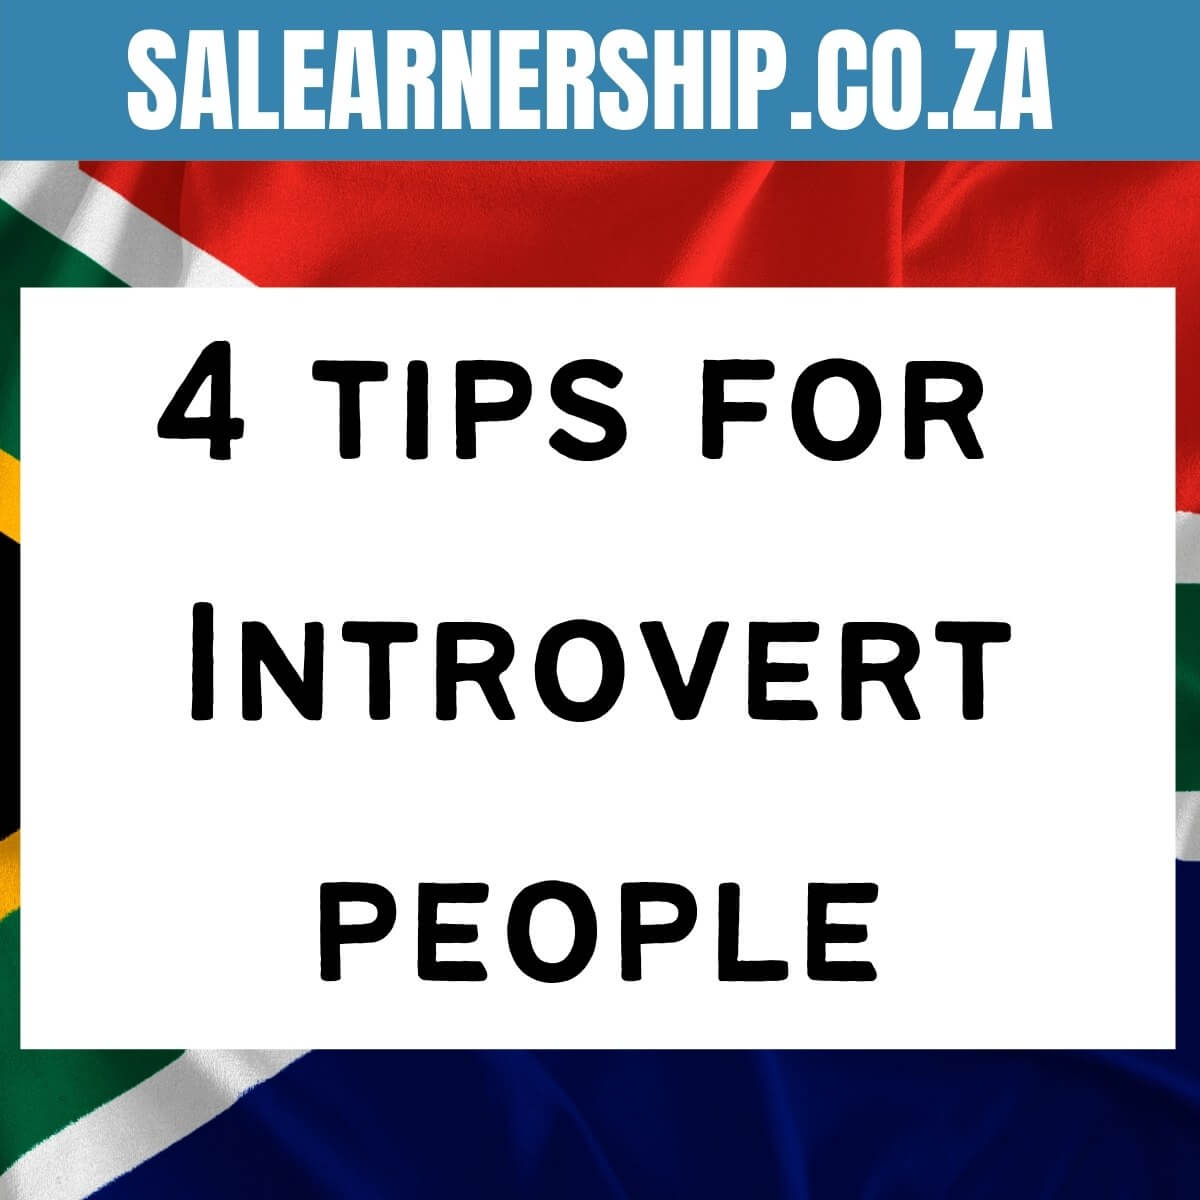 4 career tips for introvert people